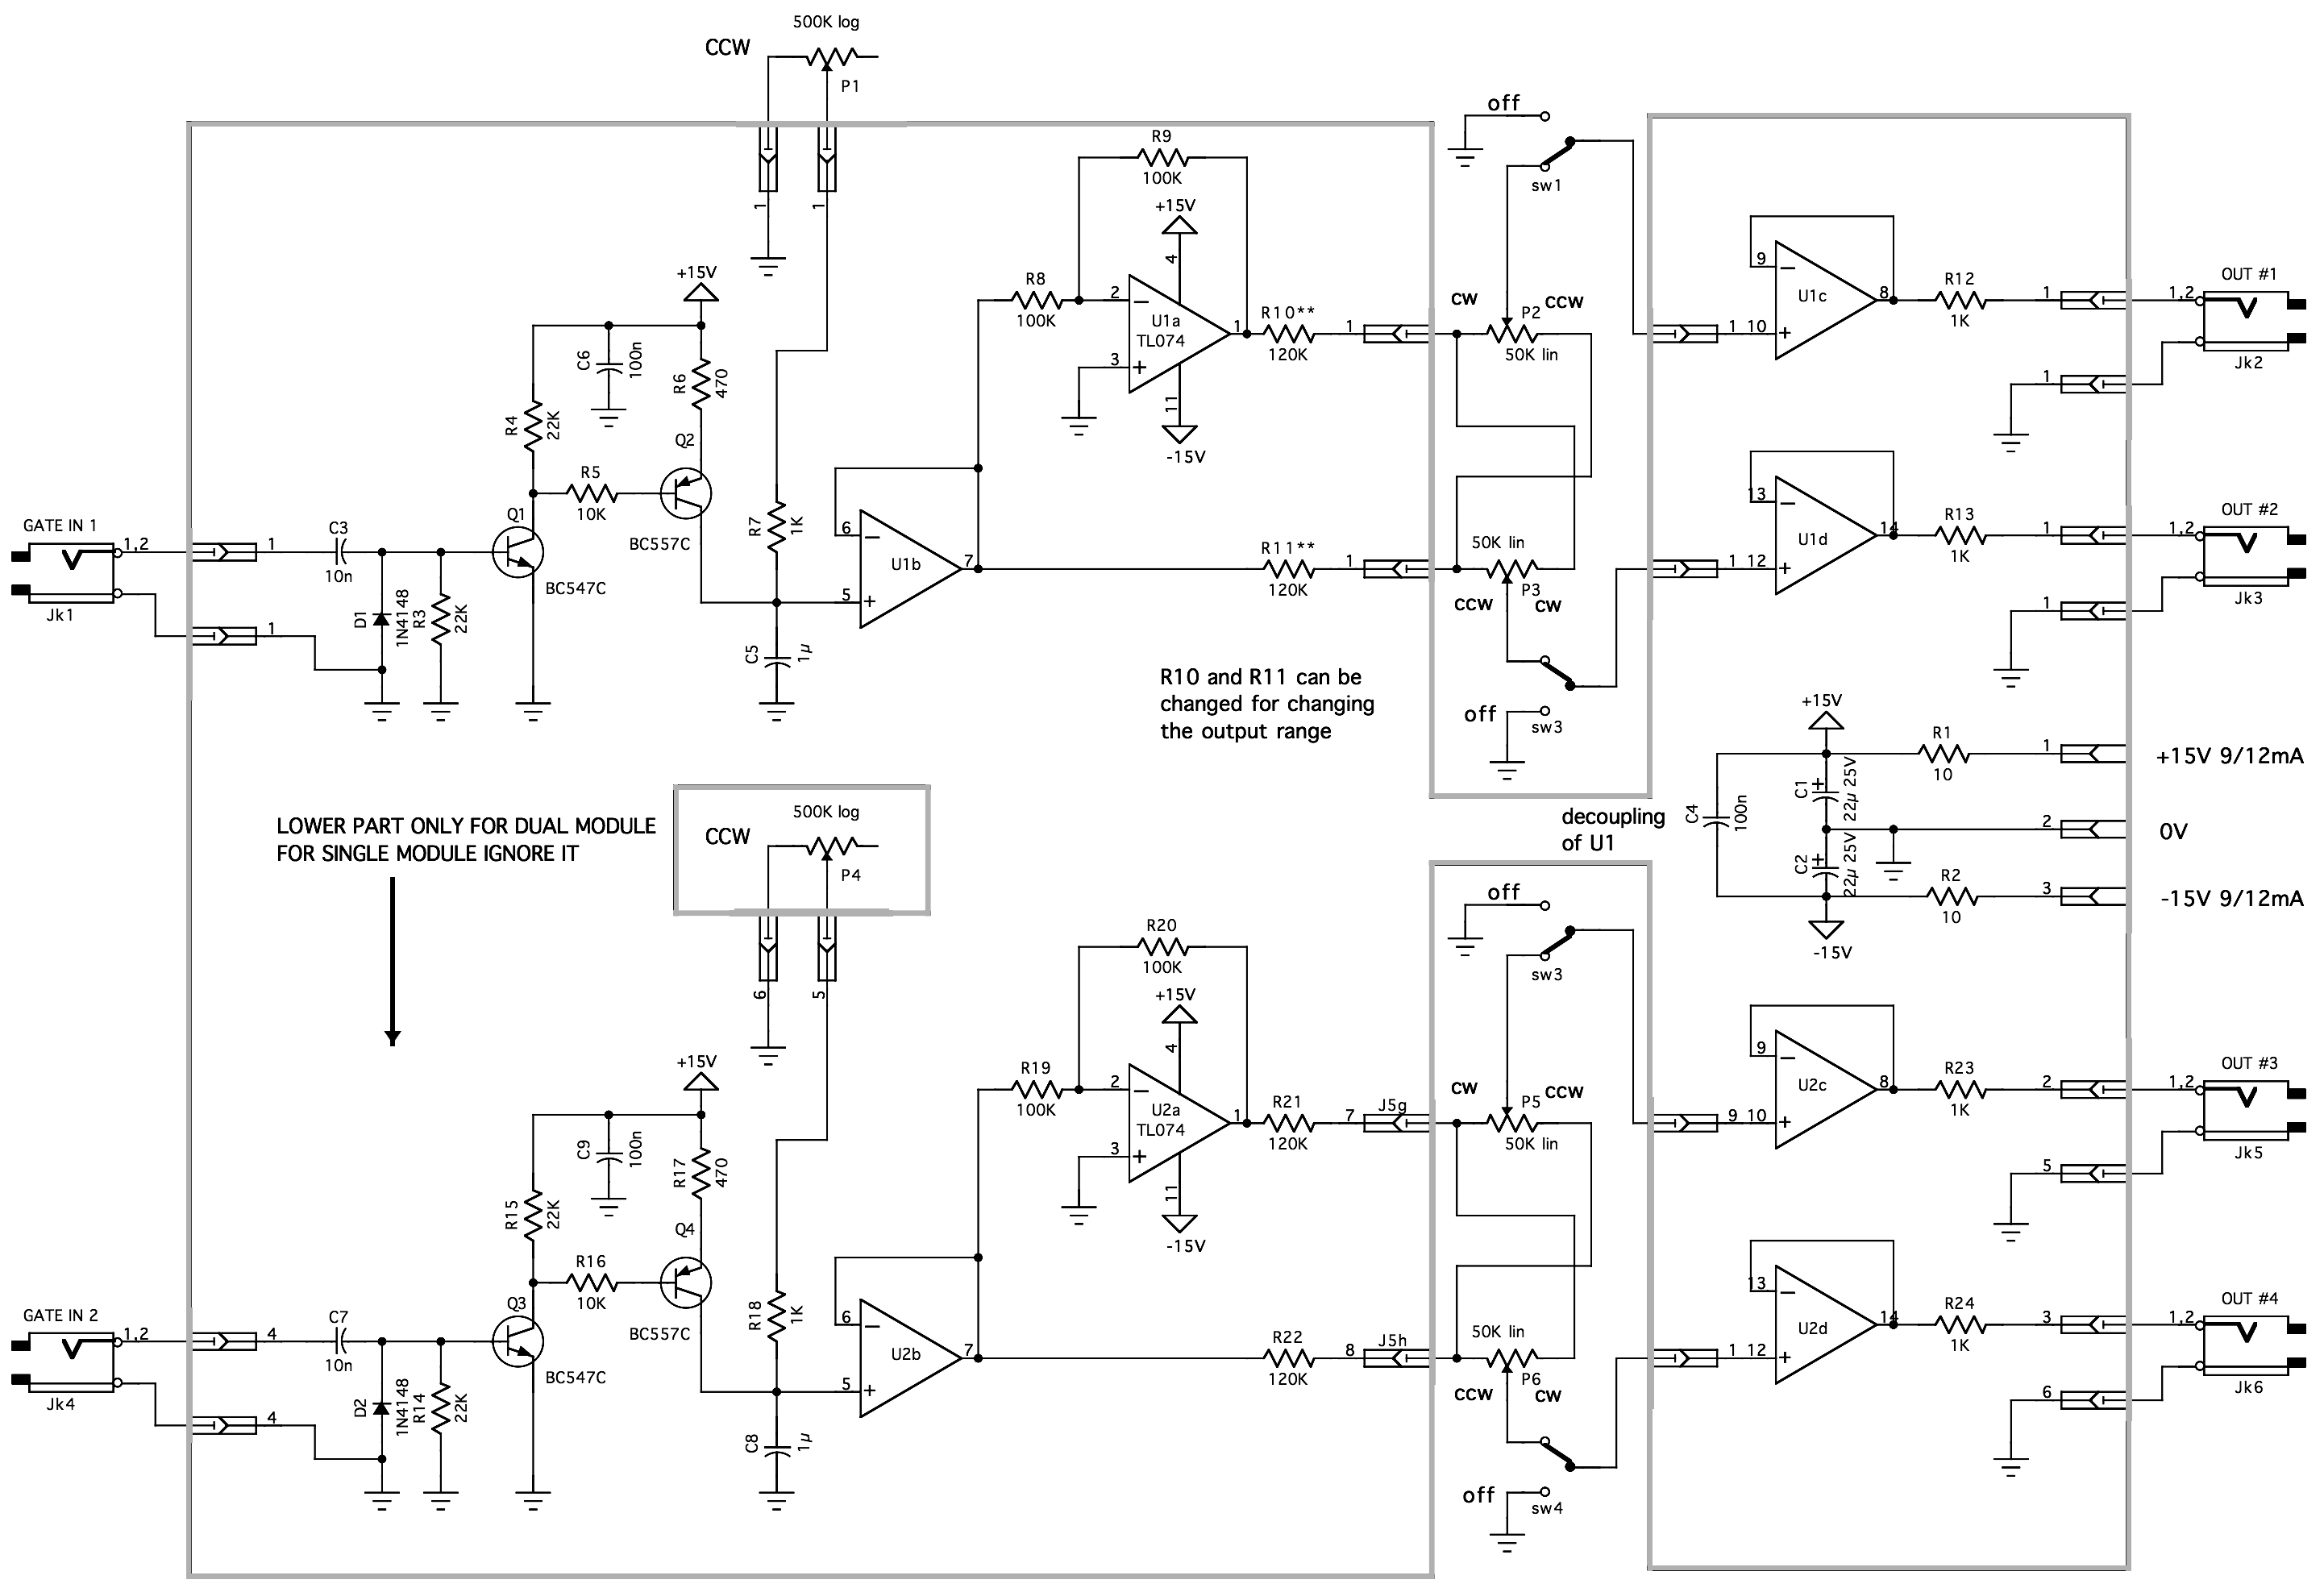 Clock Divider Decade Counter Circuit Diagram Free Download Wiring Diagrams How It Works Channel 1 The Input Signal Is Applied To A Schmitt Trigger Q1 Q2 Which Converts Signals Proper Logical Level 0v Or 15v